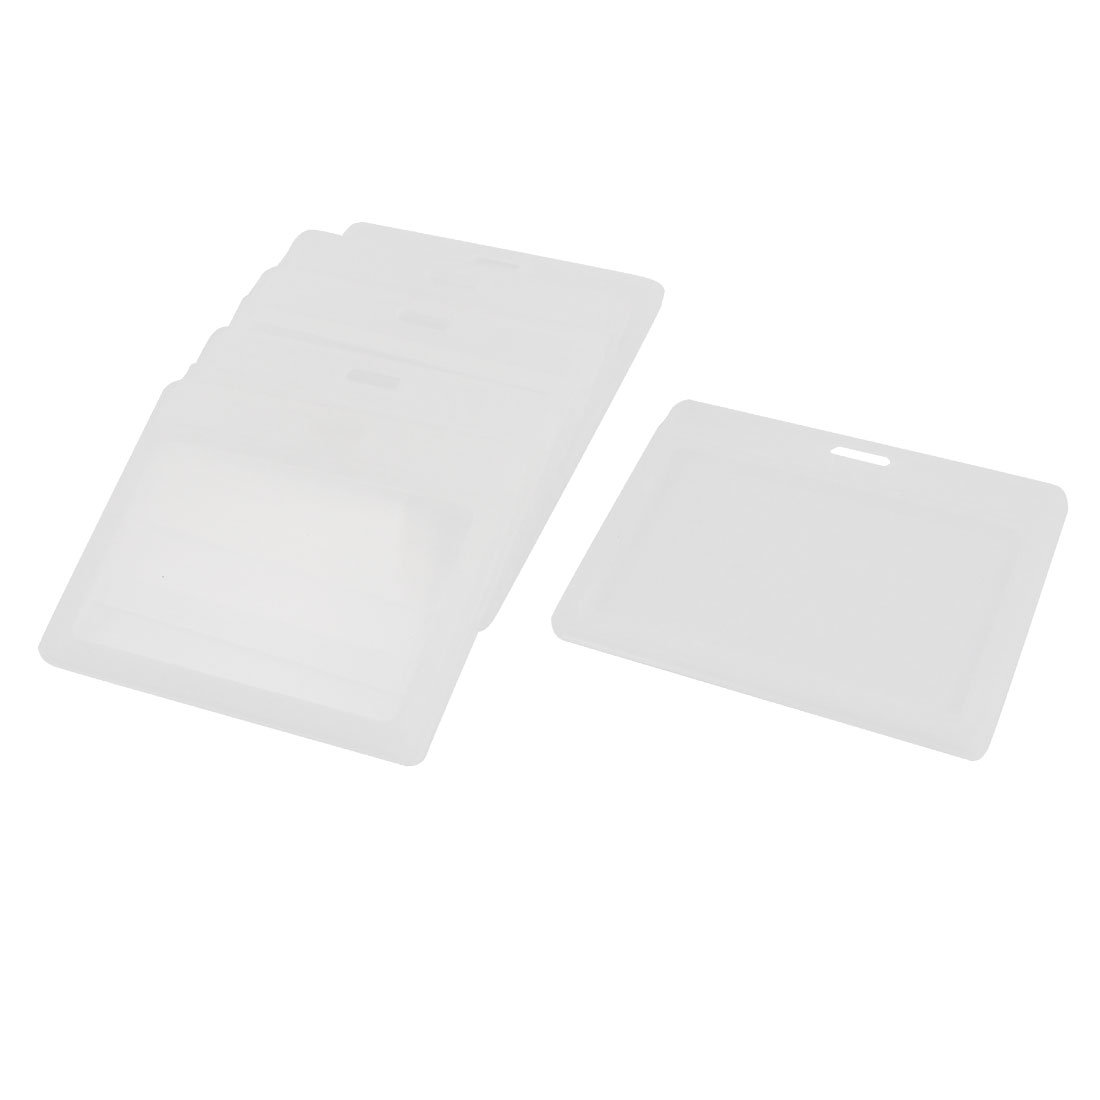 6pcs Clear Plastic Horizontal 2Cards ID Holder Attachment Top 85mm x 54mm